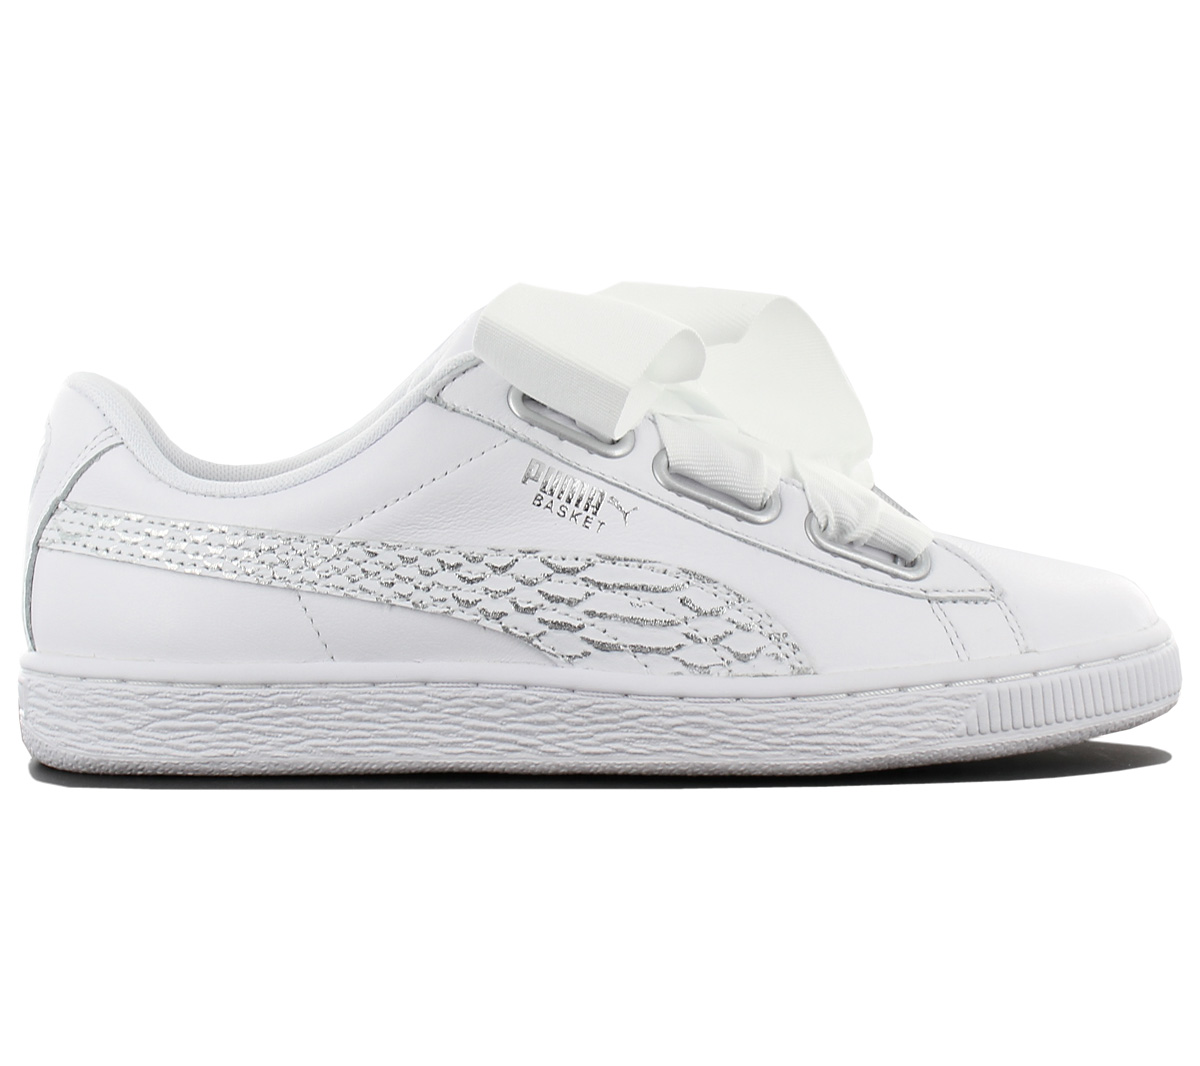 1878d0b71d Puma Basket Heart Oceanaire Women s Sneakers Leather Shoes White ...